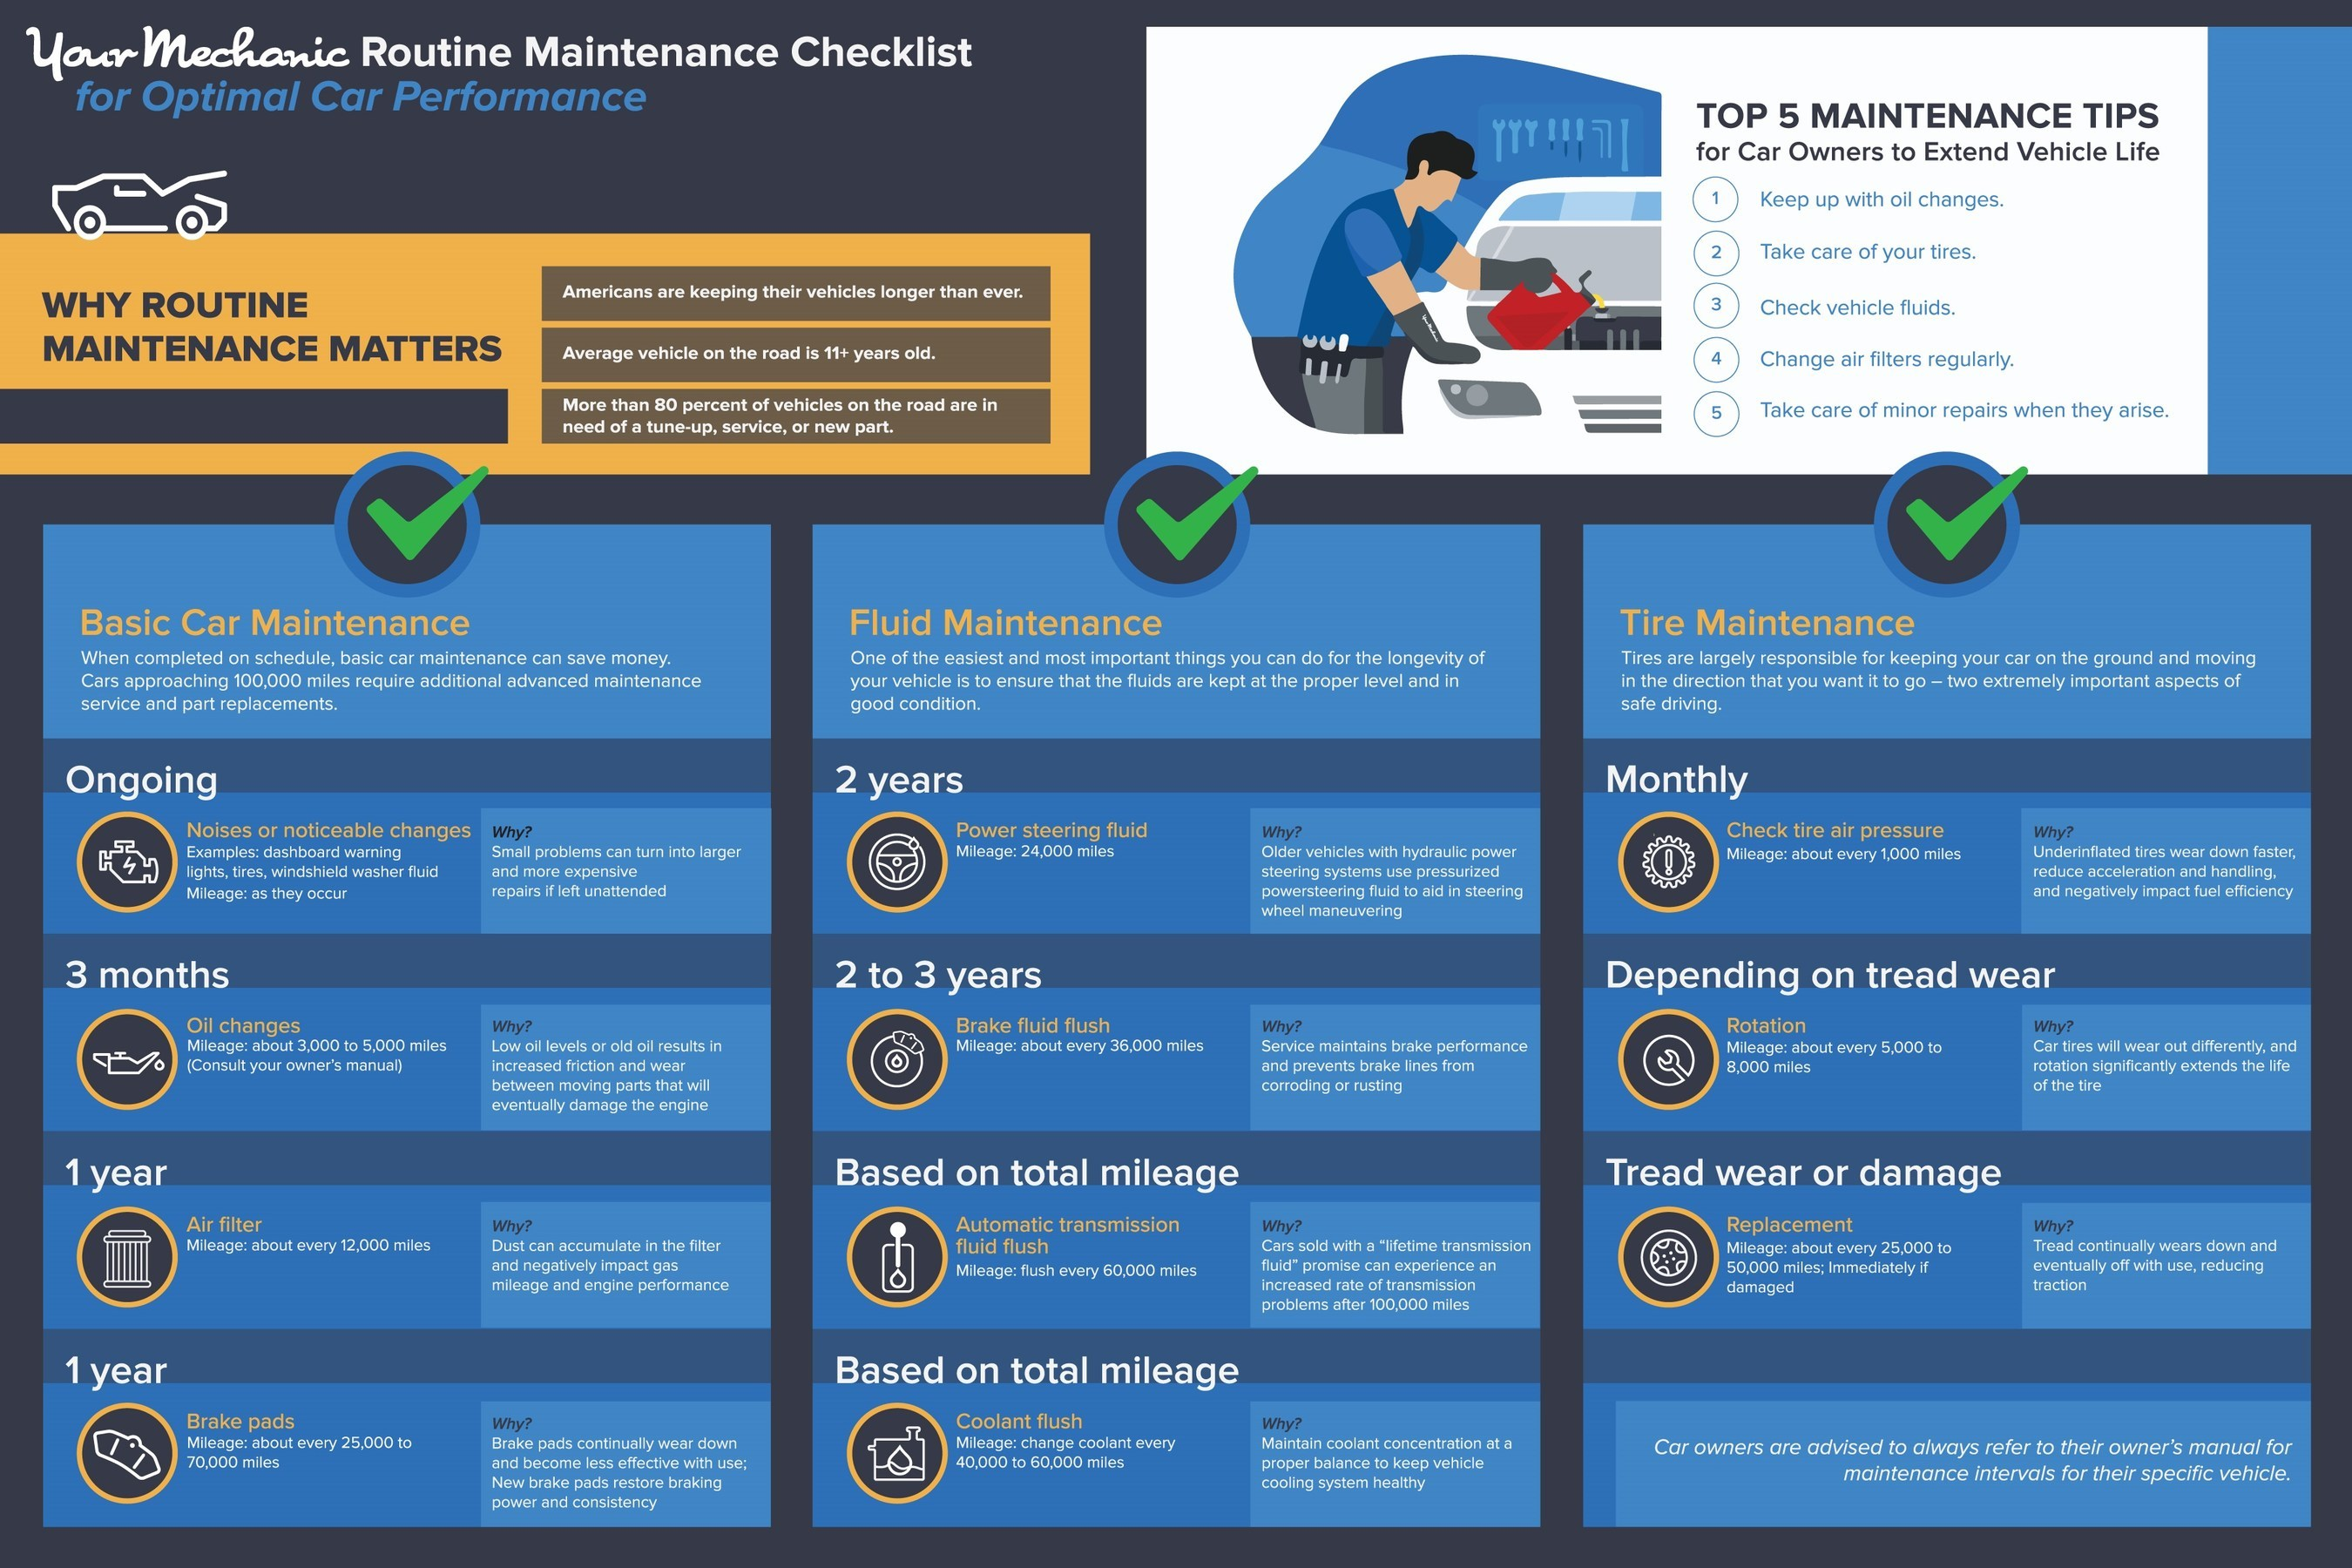 YourMechanic surveyed hundreds of mechanics from more than 30 states to compile the top tips car owners should follow as a guide to help extend the life of their vehicle. Recommendations include following basic maintenance schedules, monitoring fluid levels, and keeping an eye on tire wear and tear.